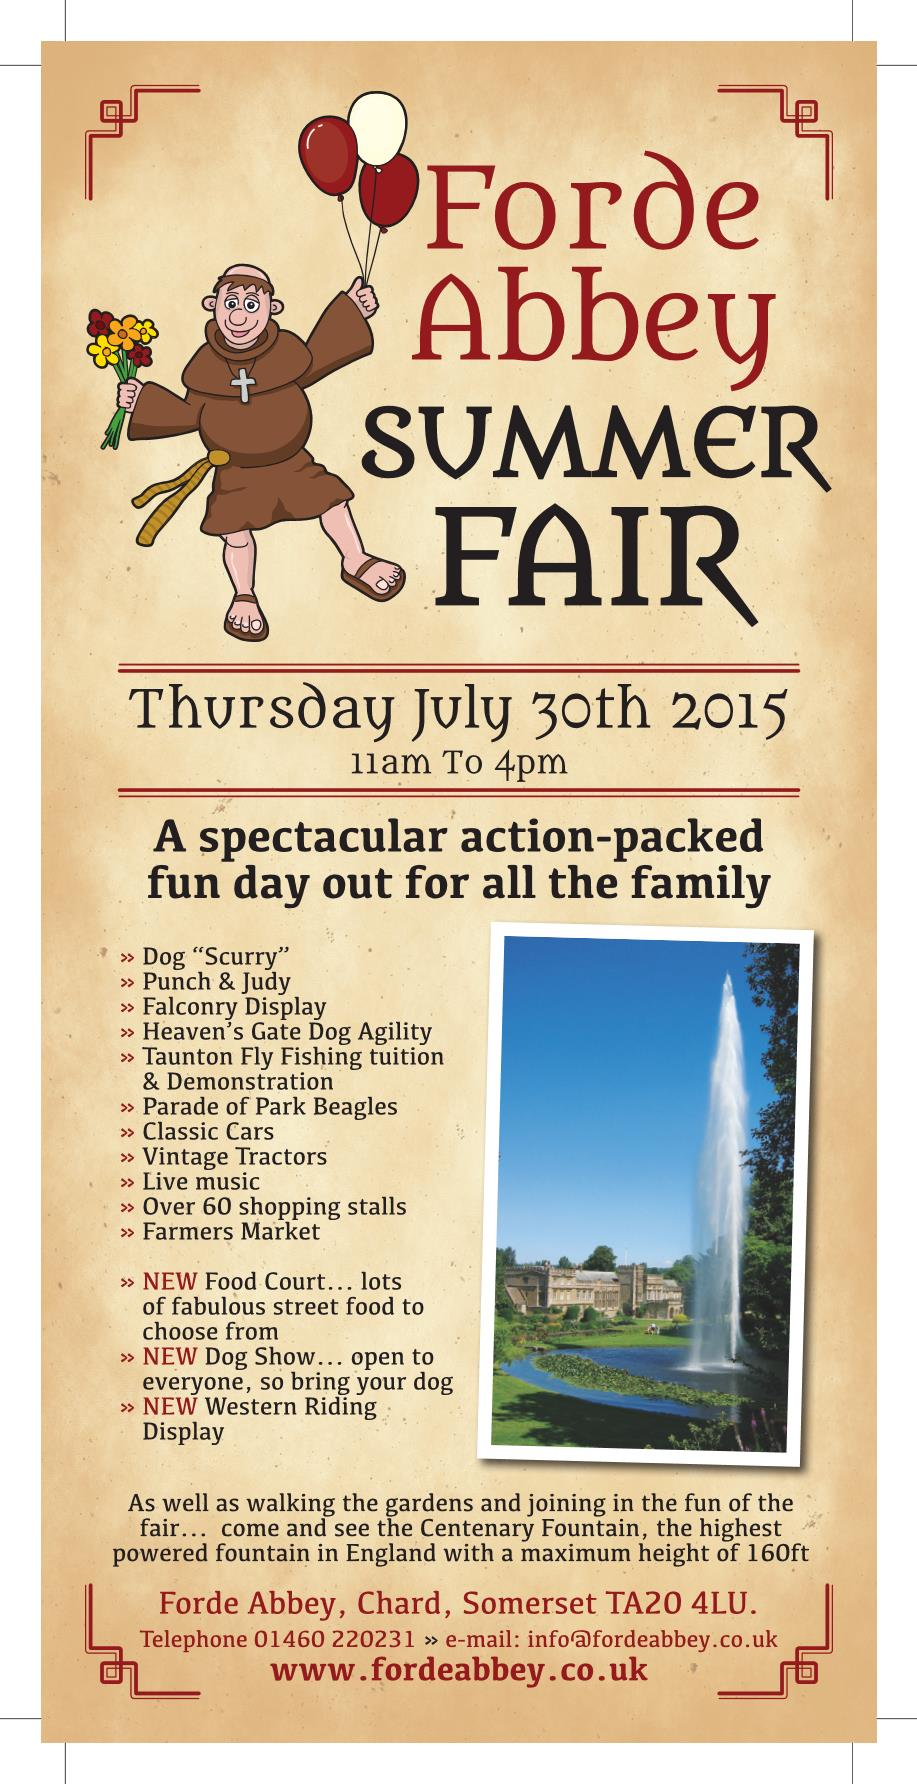 Forde Abbey Summer Fair